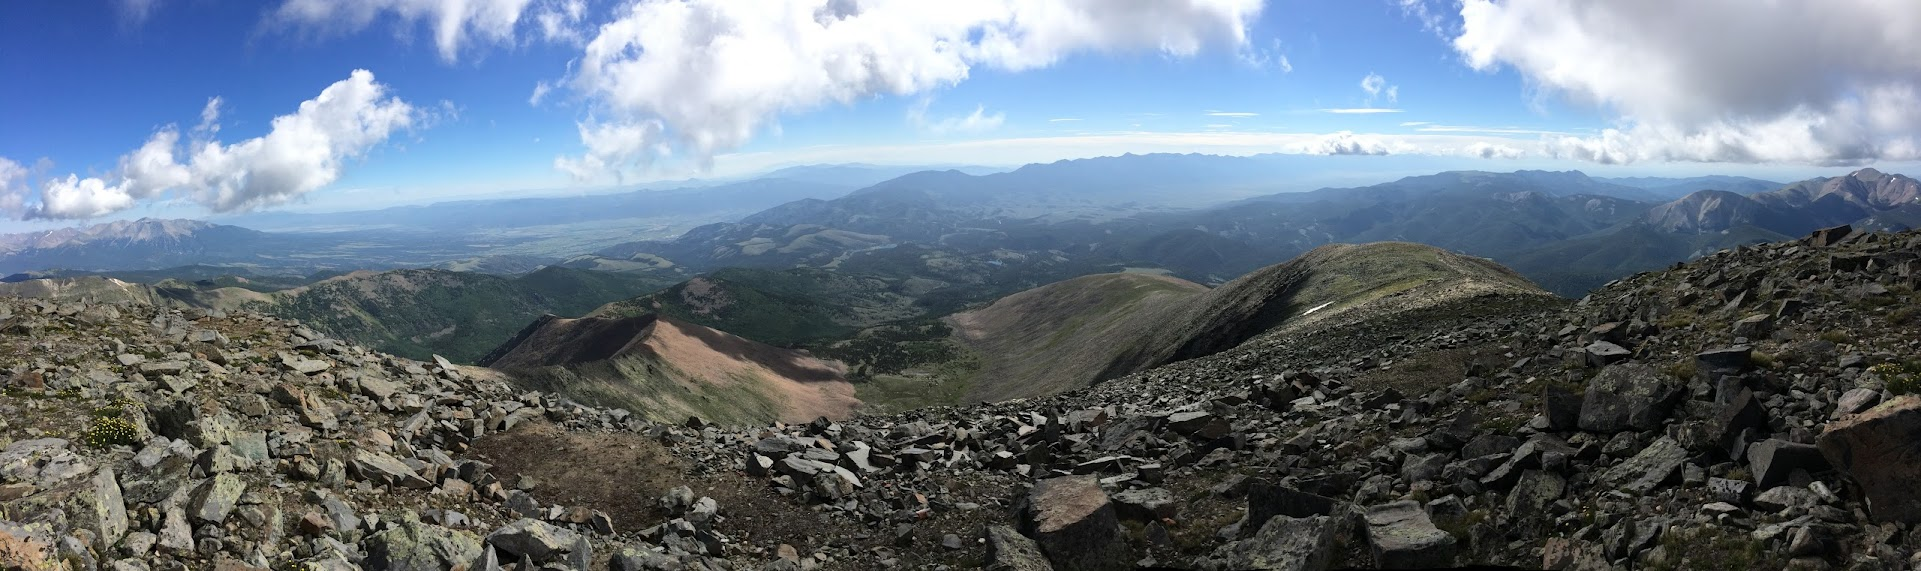 14ers Com Trip Report Mt Ouray The Devils Armchair